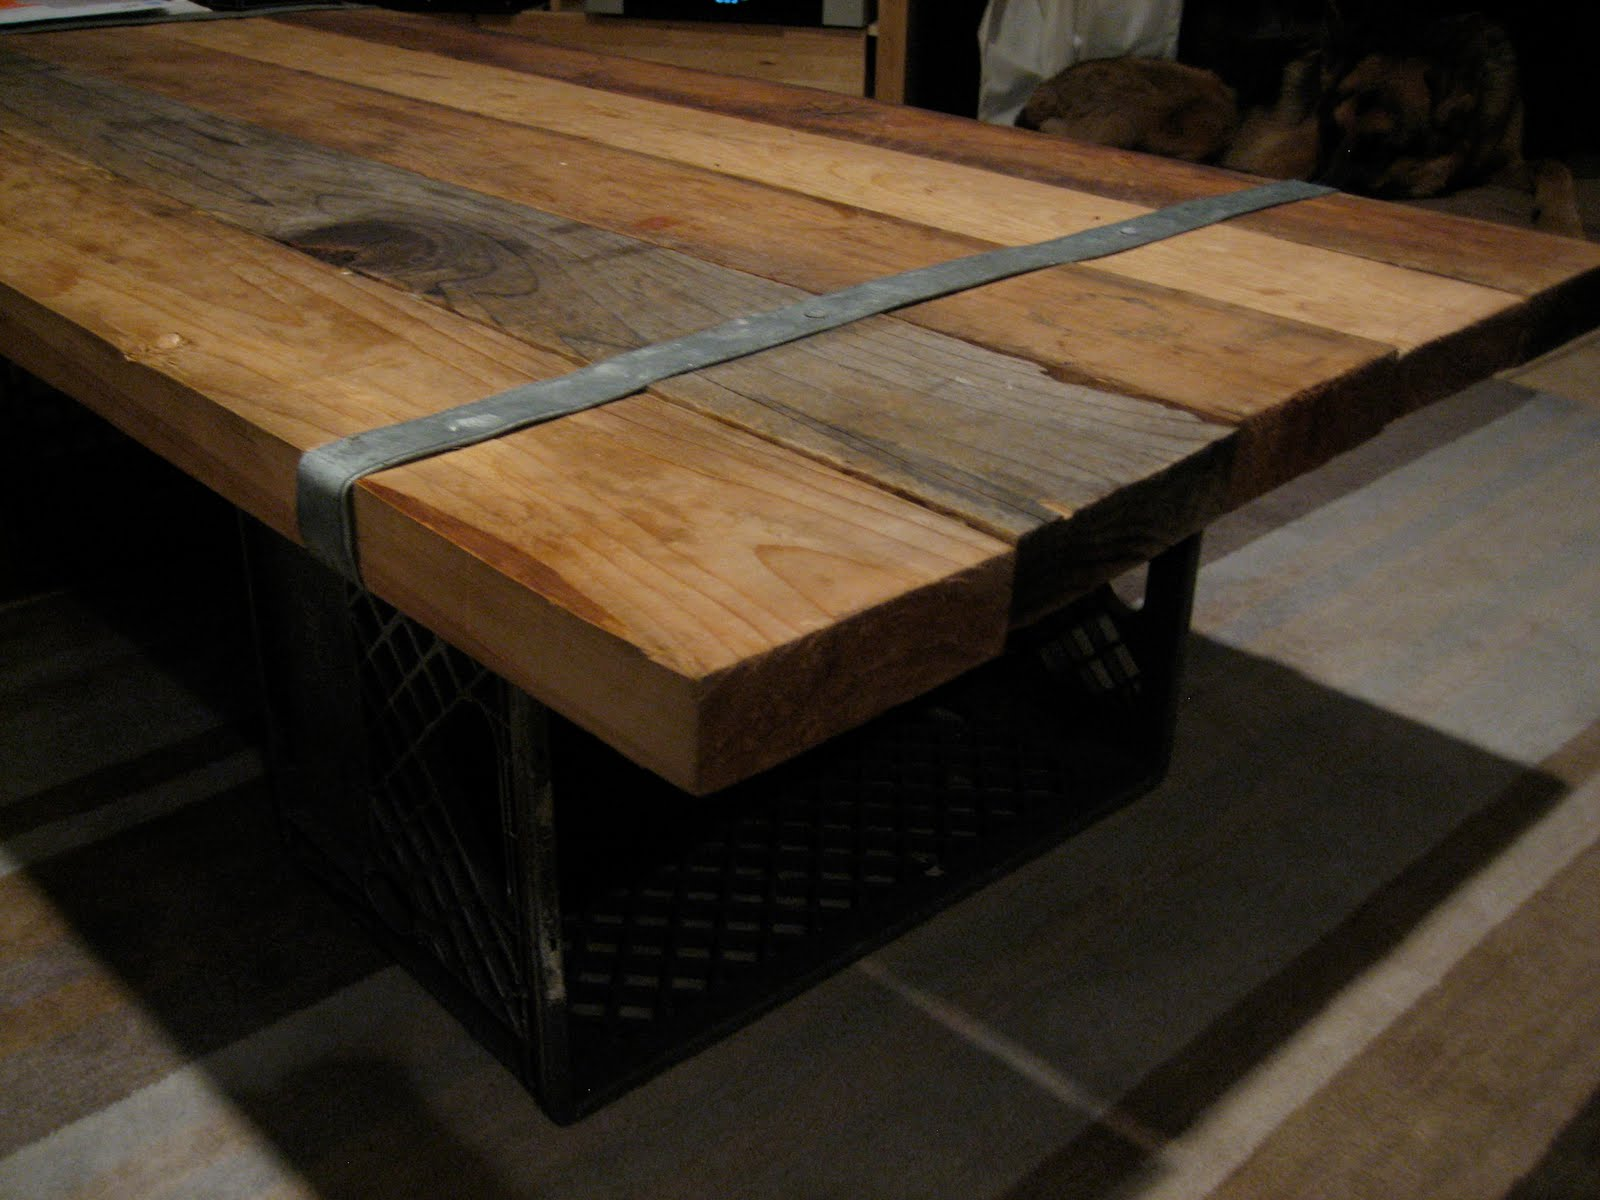 Homemade coffee table ideas photograph wood metal sc Coffee table top ideas